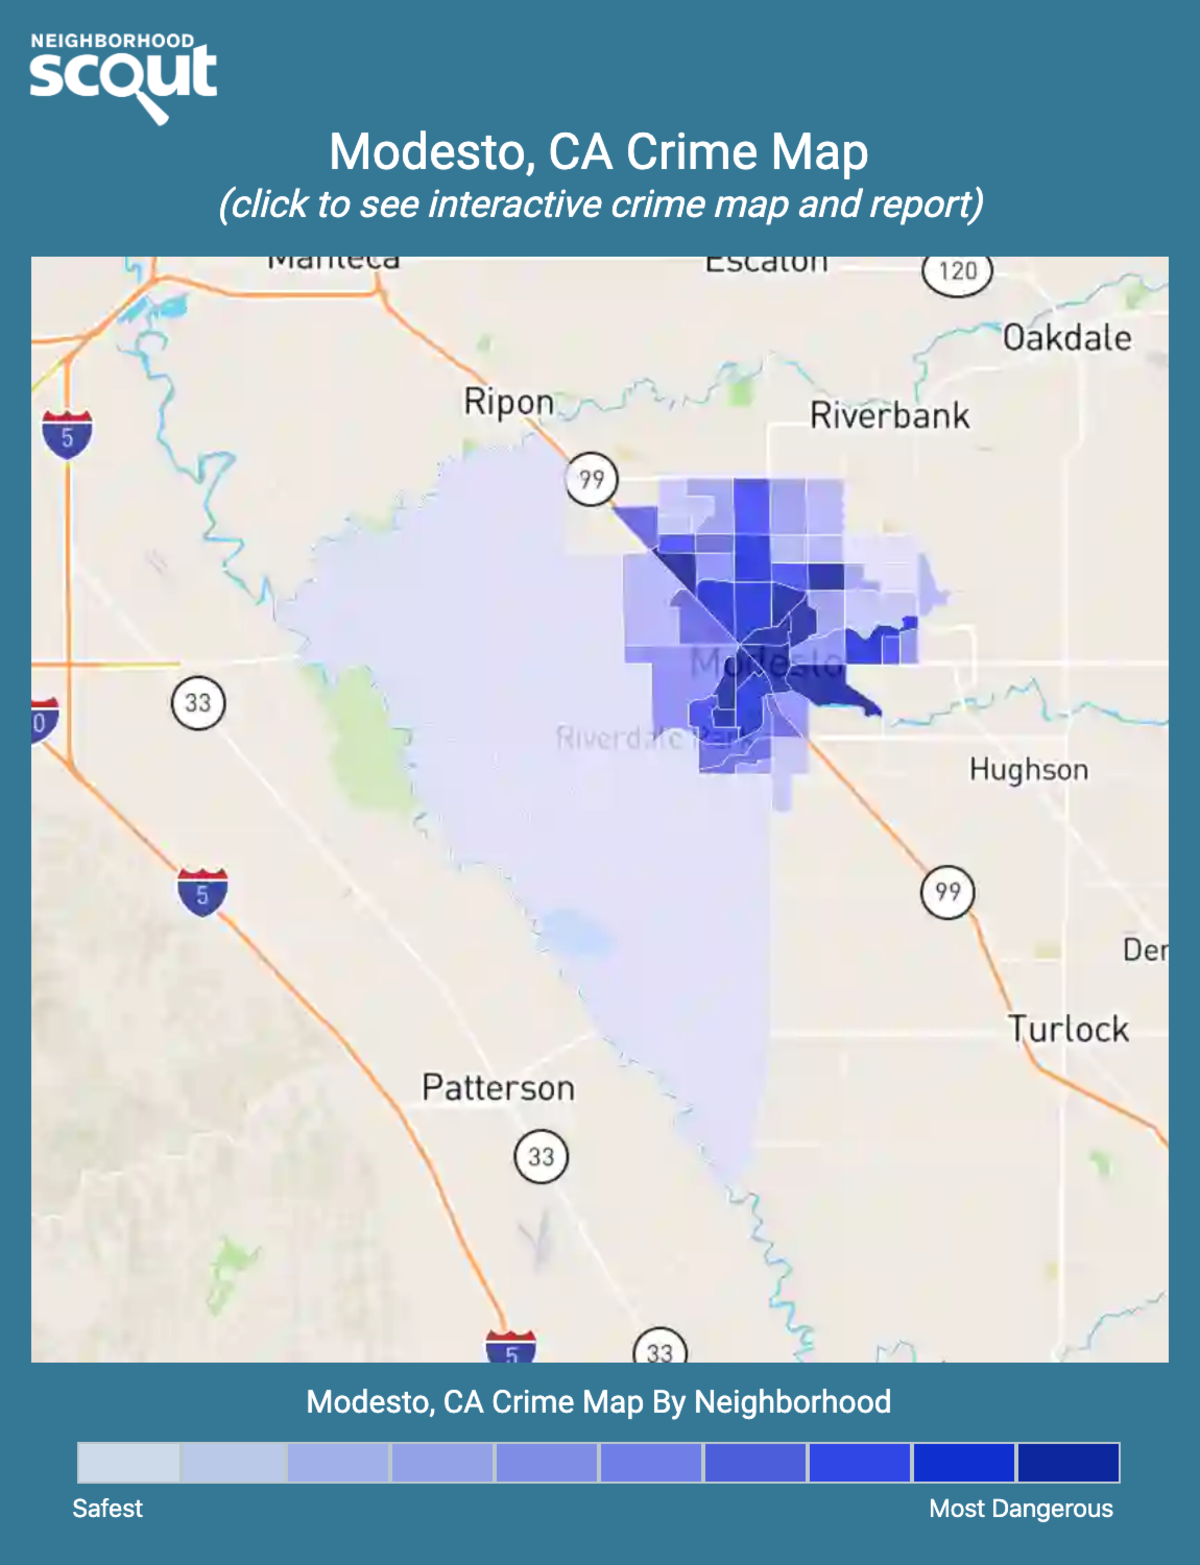 Modesto, California crime map